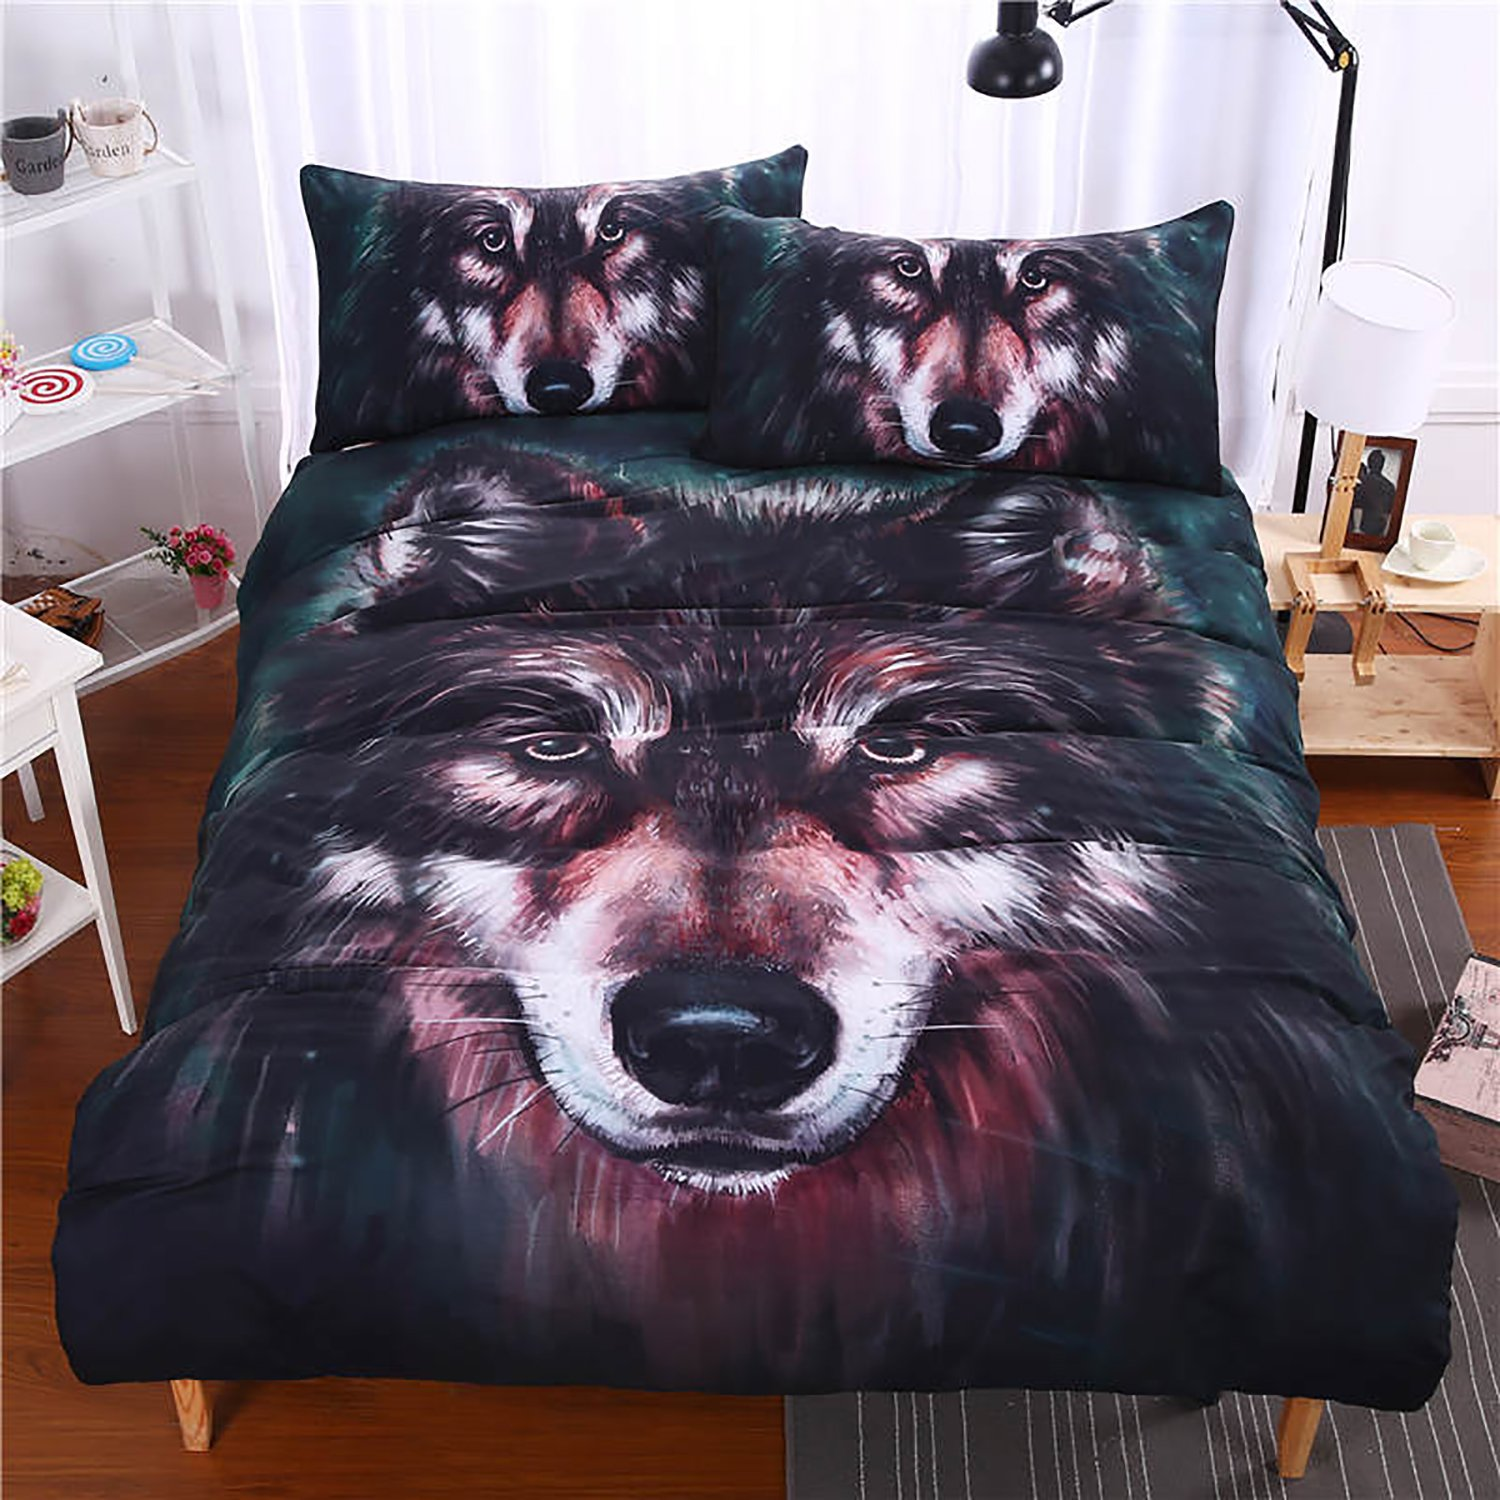 LightInTheBox BeddingOutlet Wolf Bedding Set Painting 3D Vivid Comforter Cover Quality Twill Cool Bed Set Multi Sizes 3pcs(1 Duvet Cover,2 Shams) S531135200007#DHL#wh=24